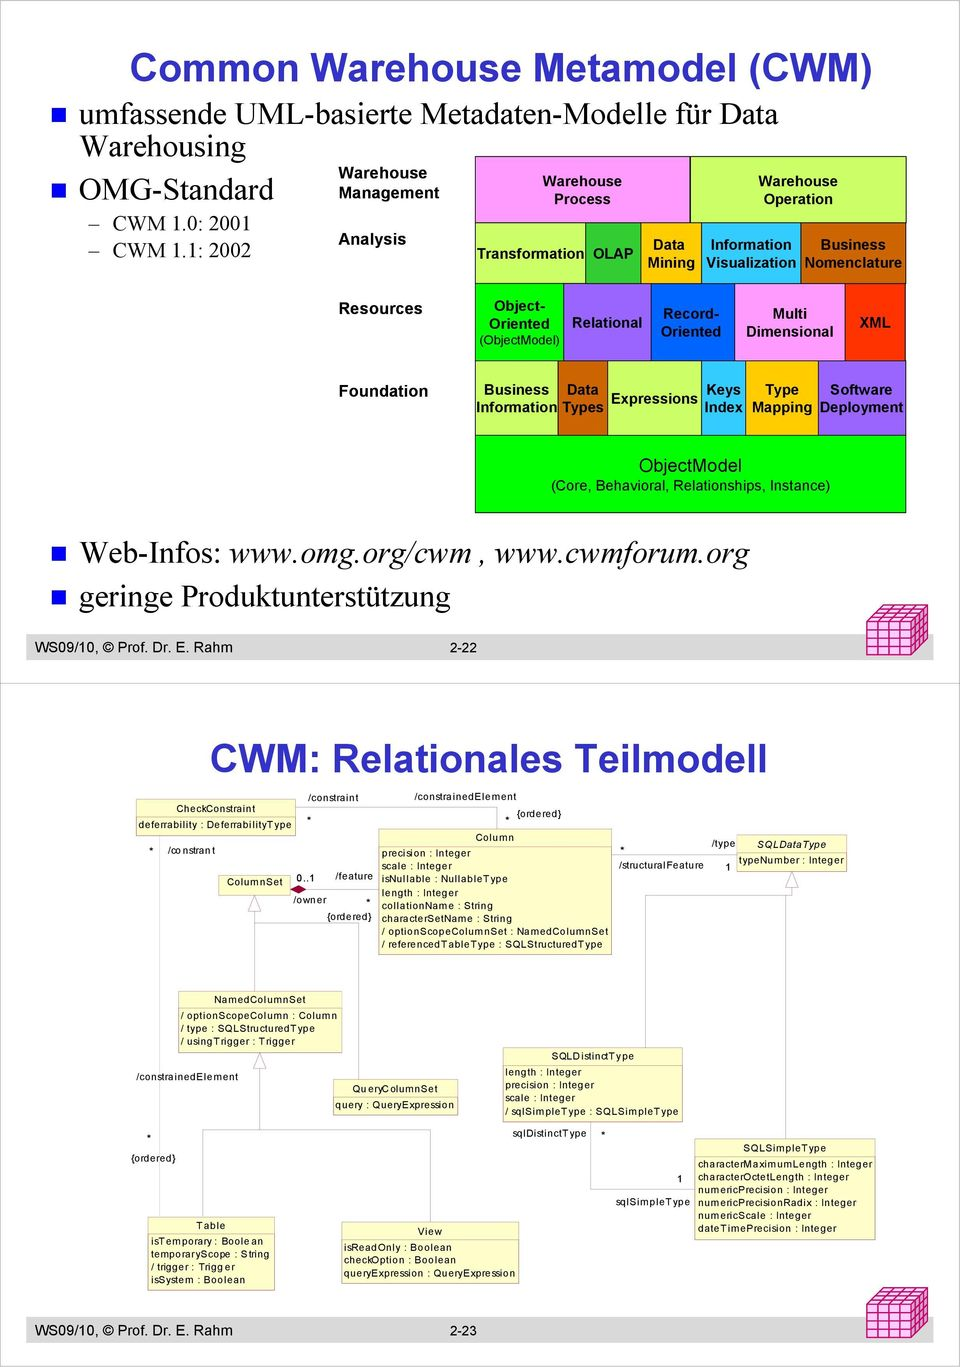 (ObjectModel) Relational Multi Dimensional XML Foundation Business Data Information Types Keys Expressions Index Type Mapping Software Deployment ObjectModel (Core, Behavioral, Relationships,